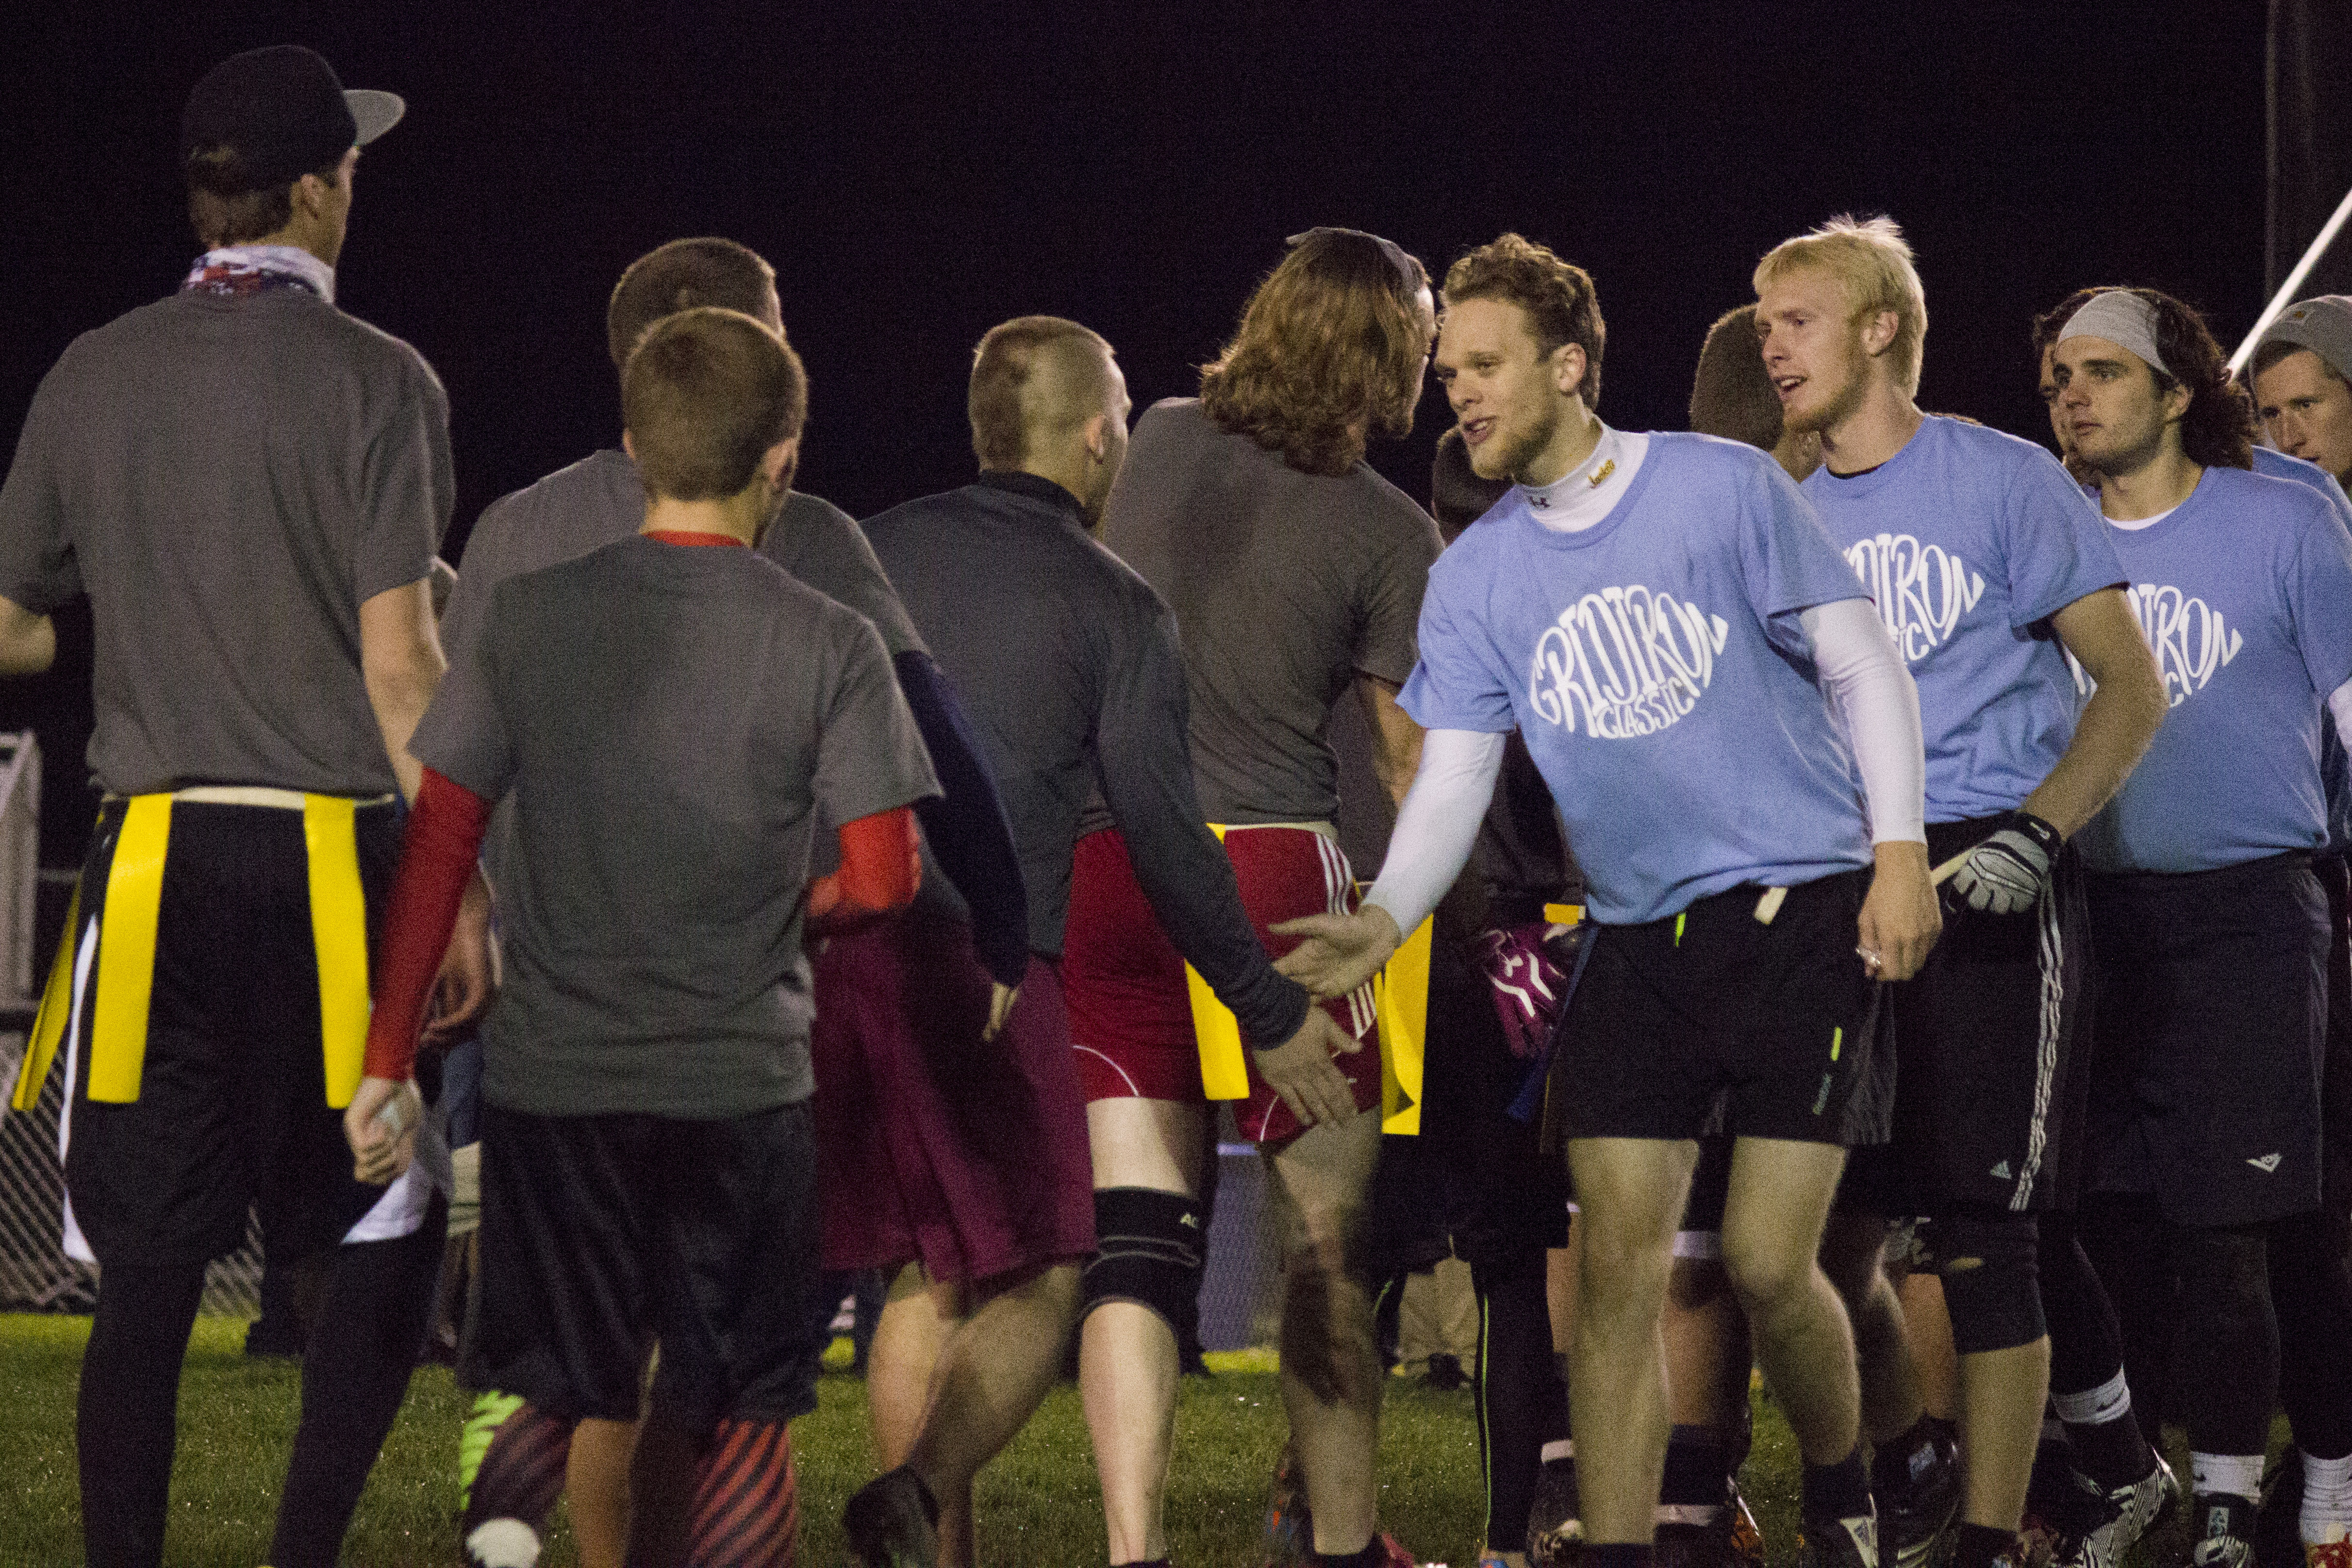 """Teams shake each other's hands, congratulating each other on a """"good game""""."""